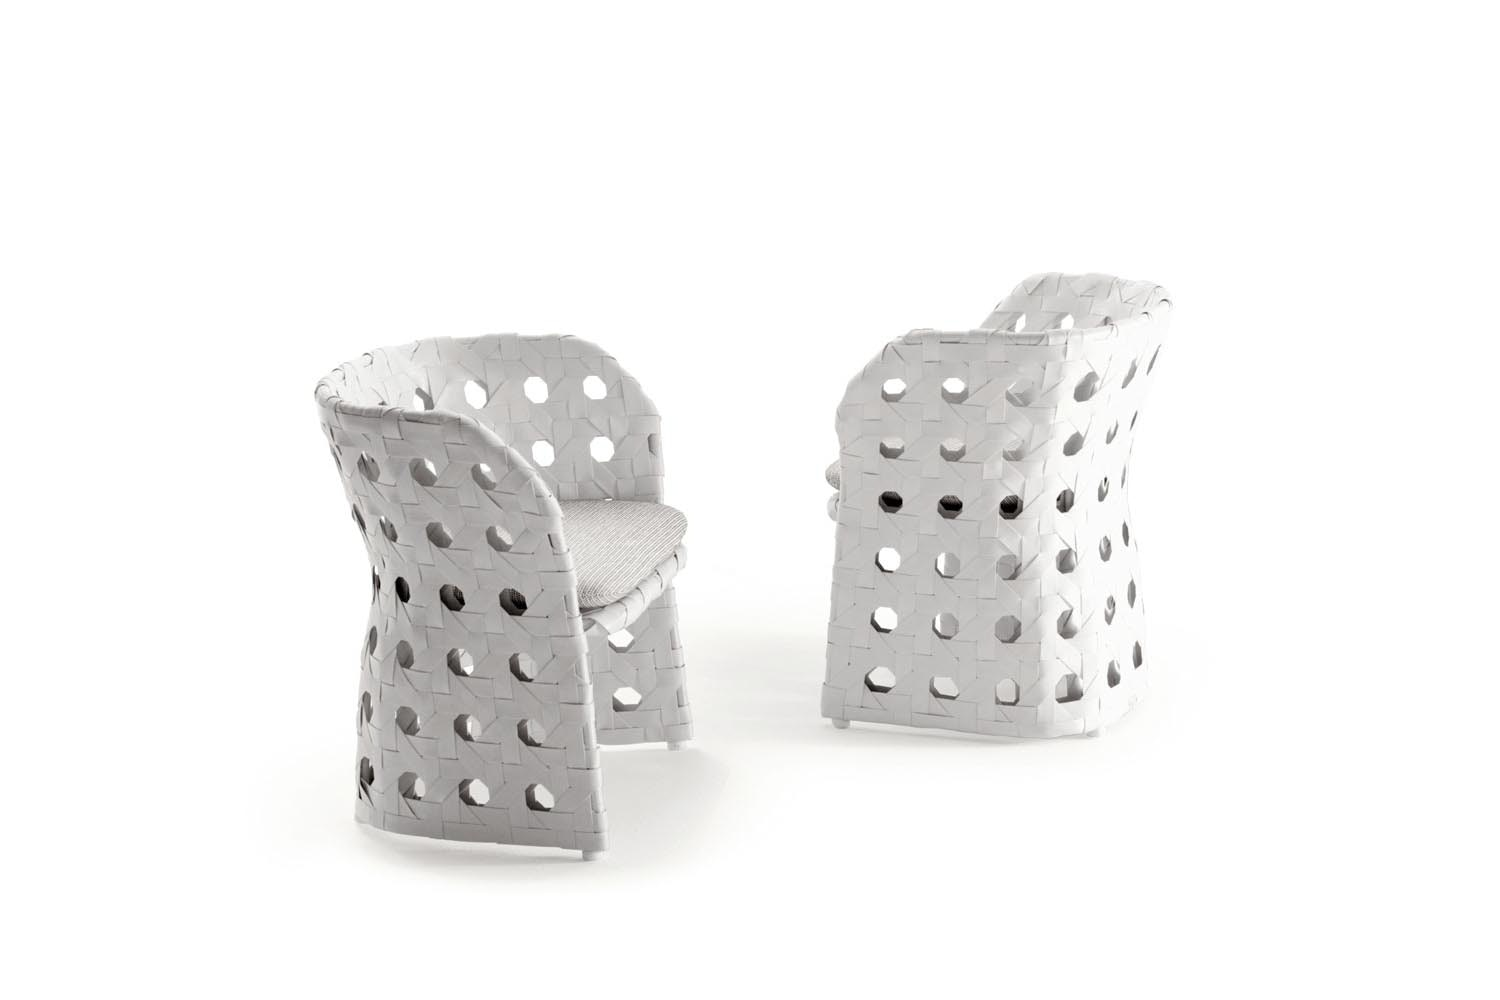 Canasta Chair by Patricia Urquiola for B&B Italia